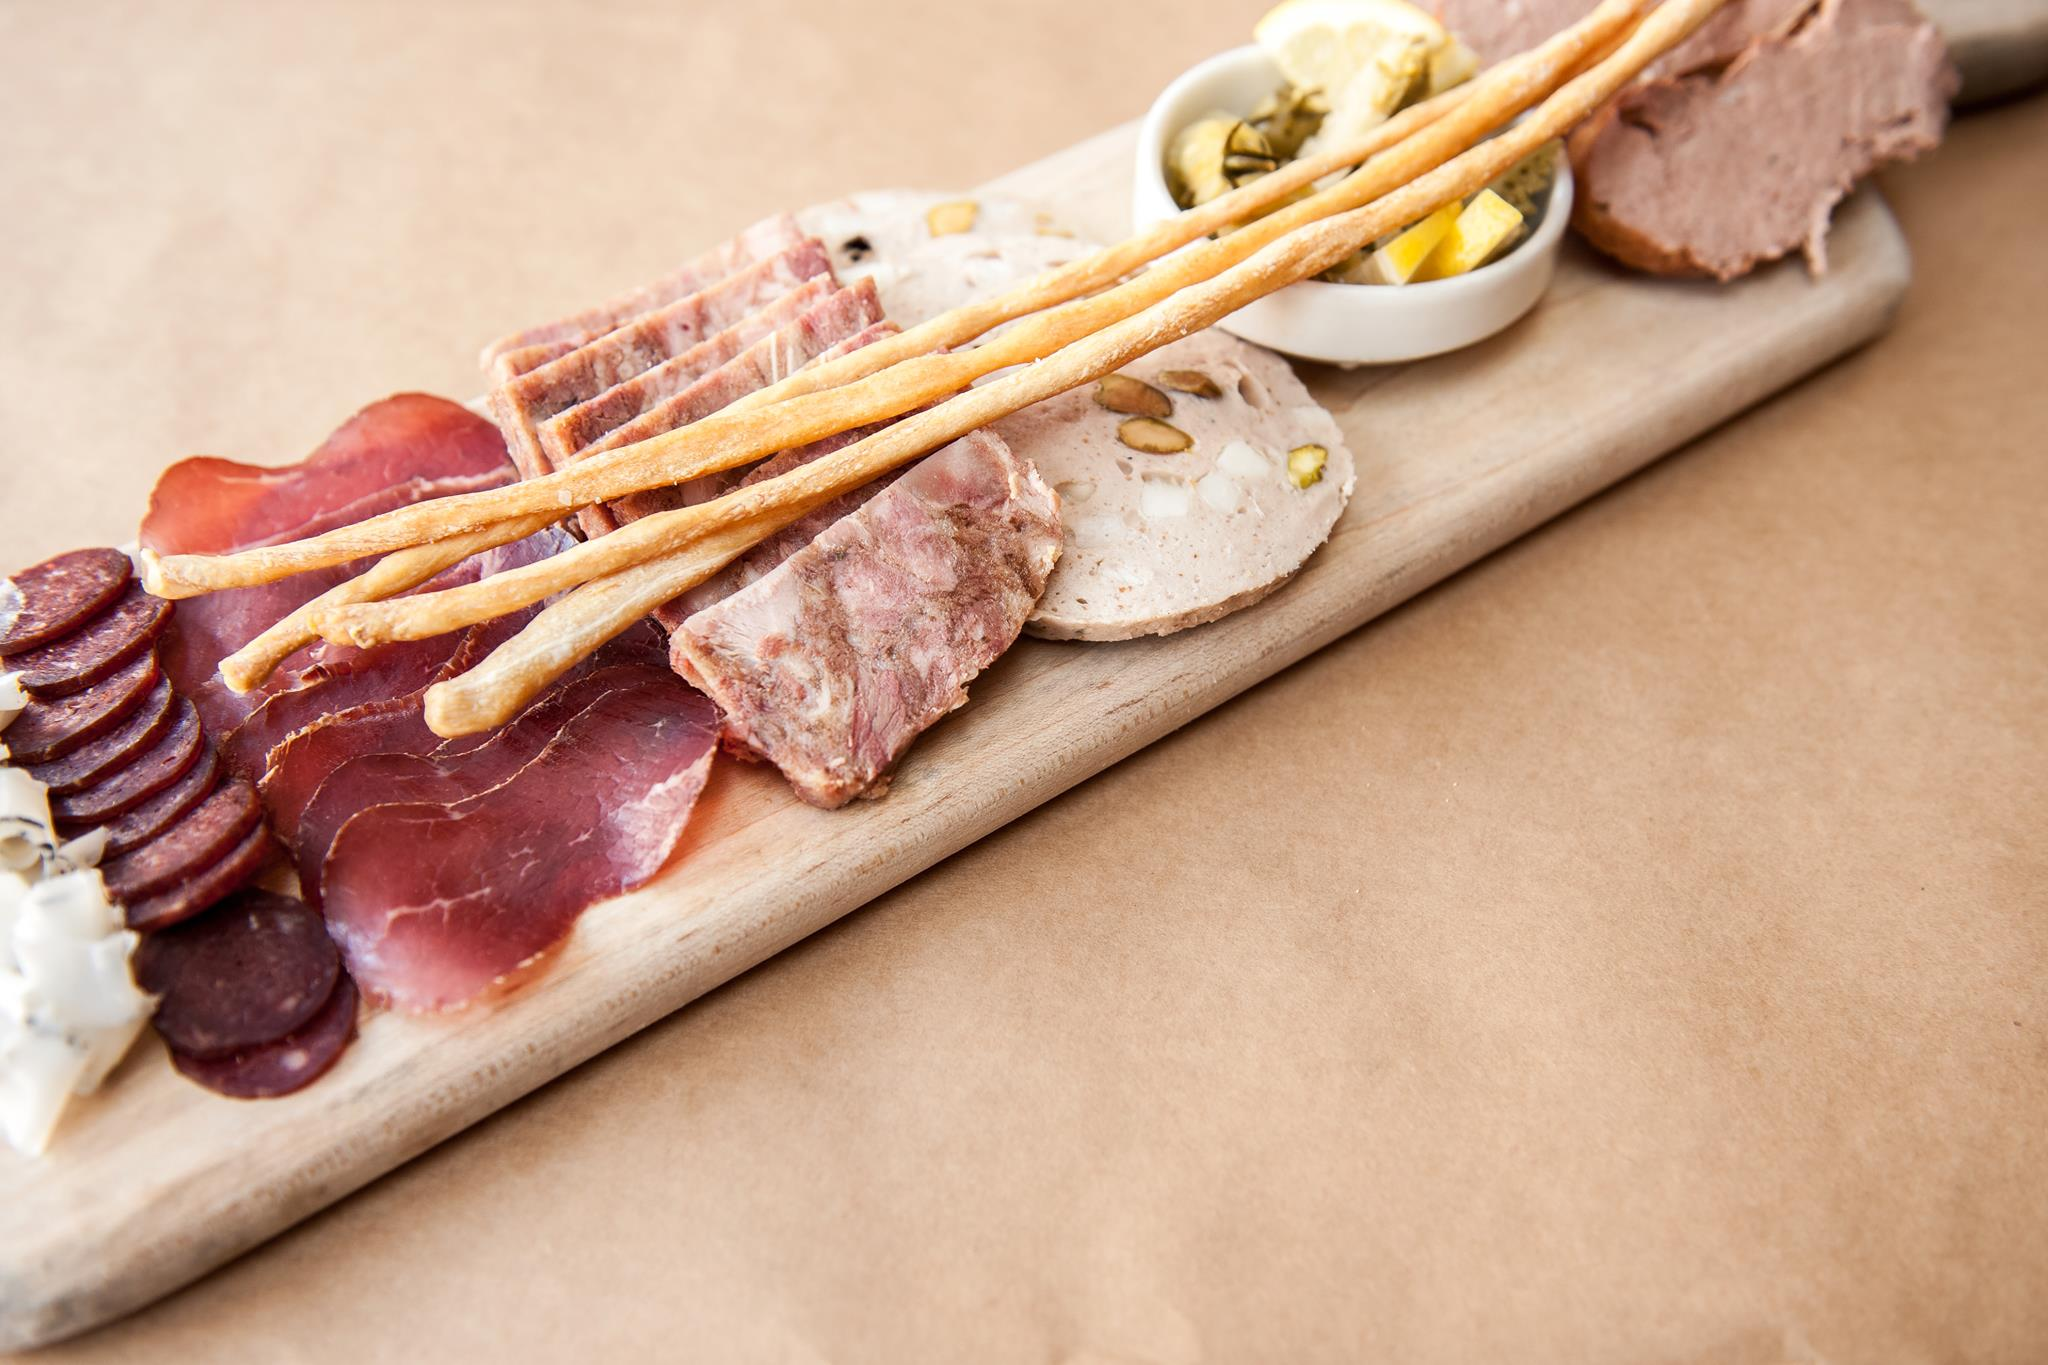 A charcuterie platter at A16